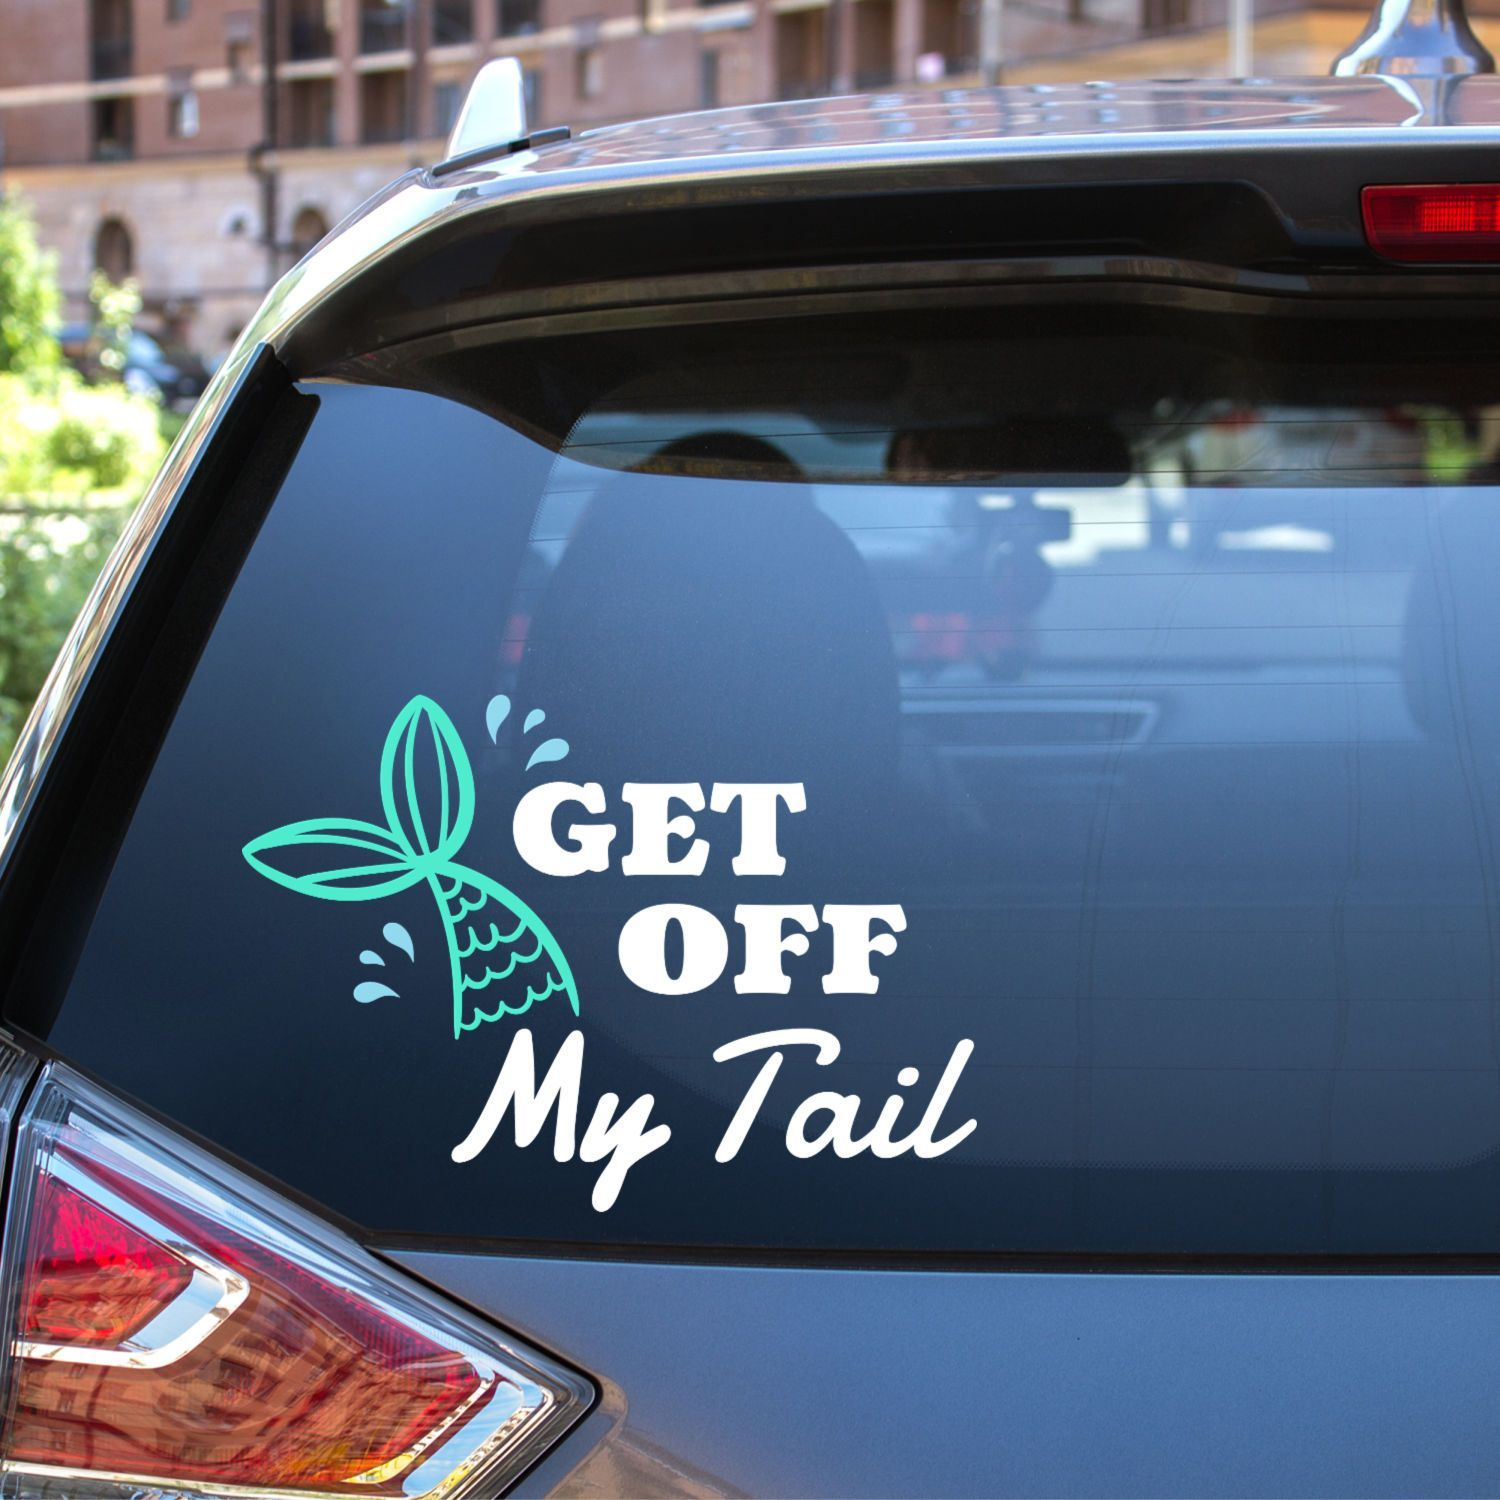 Nobody Likes A Tailgater Especially Mermaids Add This Get Off My Tail Decal With A Cute Mermaid Tail T Cute Car Decals Funny Car Decals Car Window Stickers [ 1500 x 1500 Pixel ]